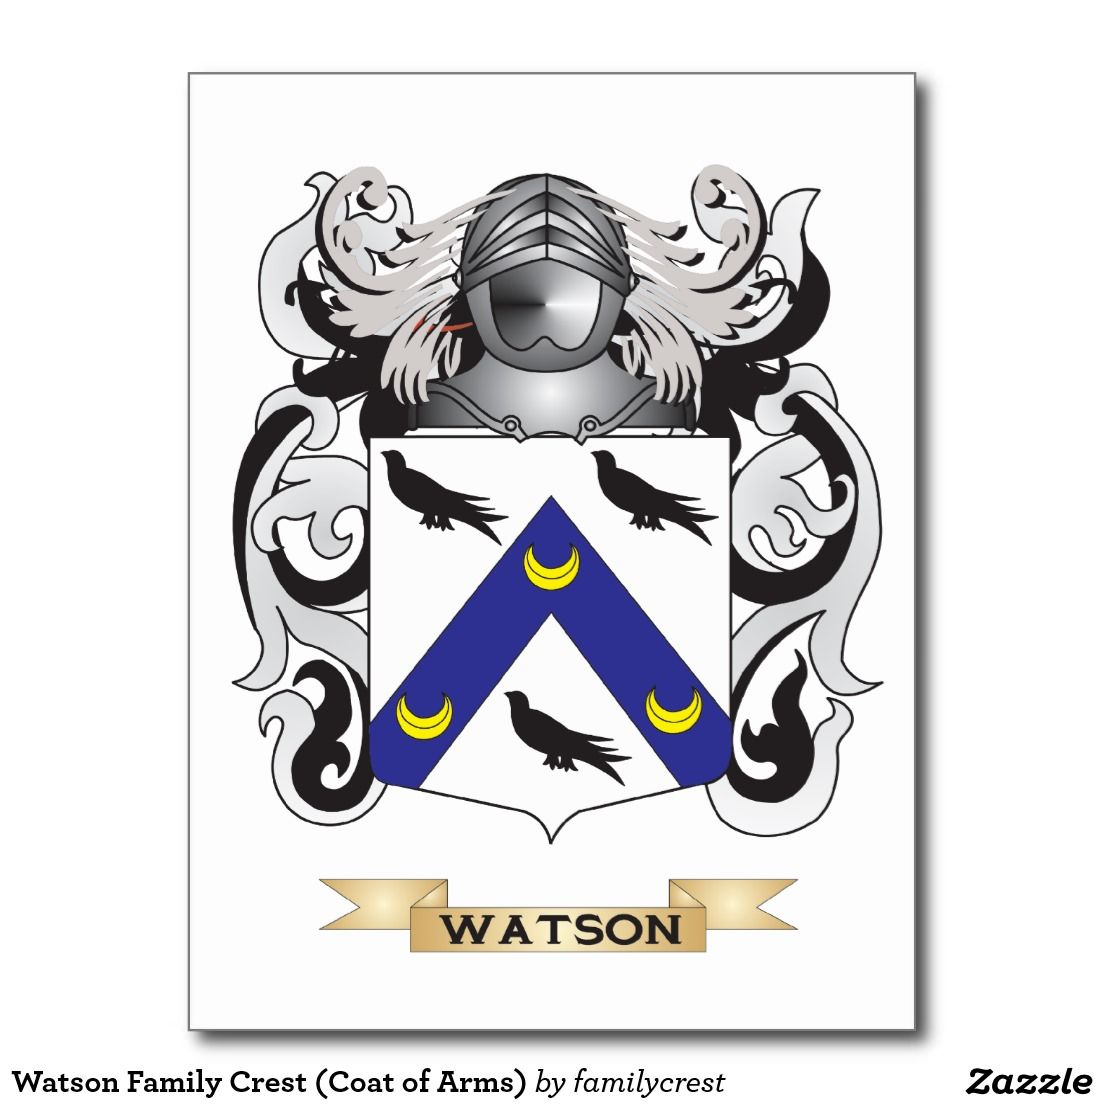 Watson family crest coat of arms postcard arms watson family crest coat of arms postcard biocorpaavc